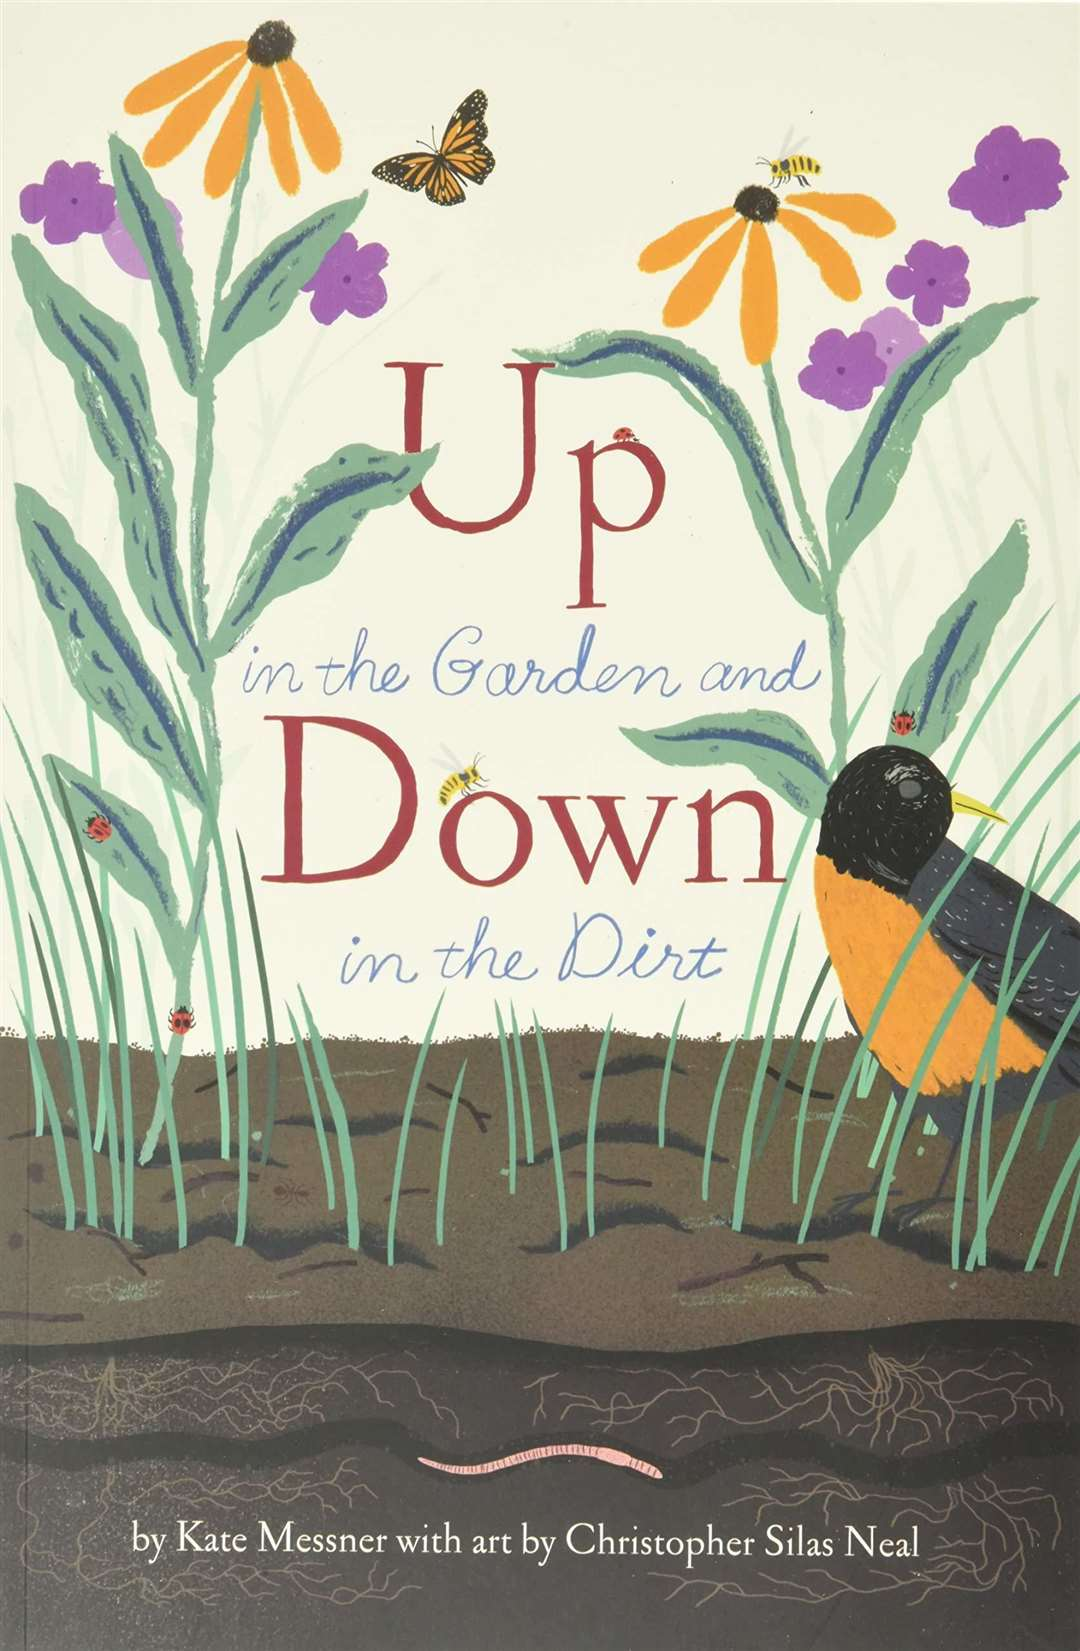 Up in the Garden and Down in the Dirt by Kate Messner and Christopher Silas Neal (46204139)